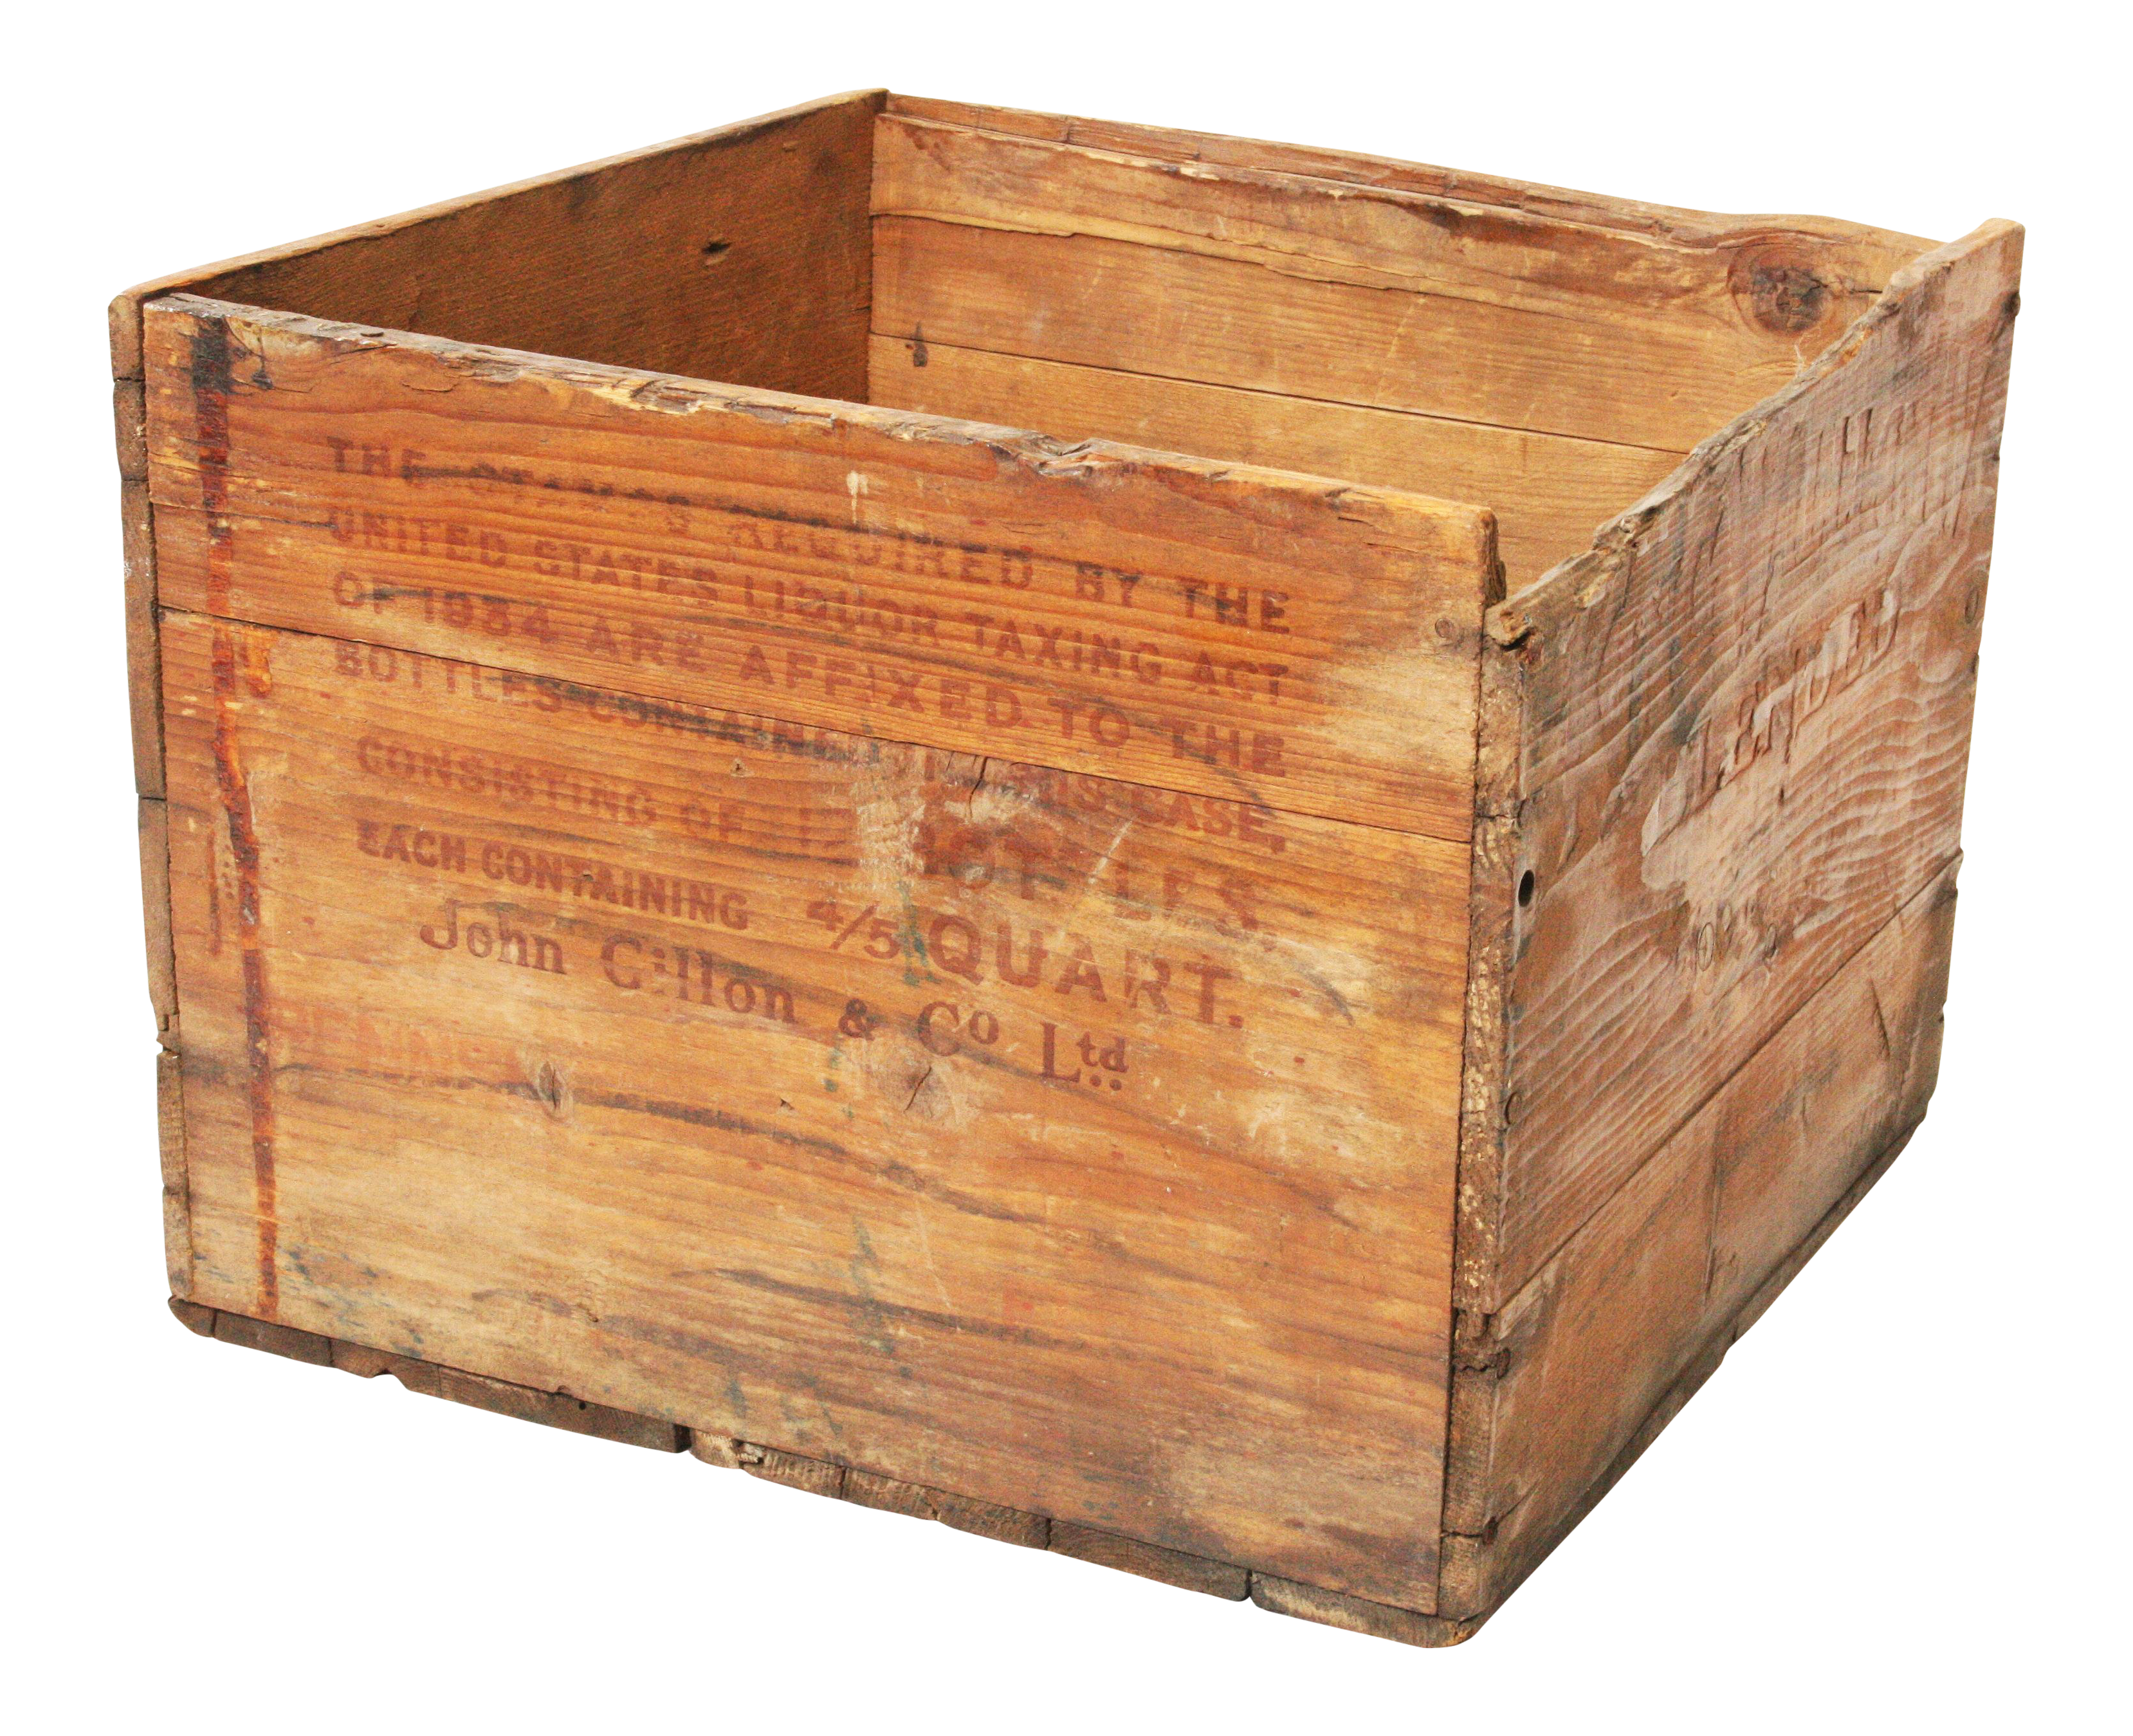 Vintage garden crate png. Scotch whiskey wood shipping